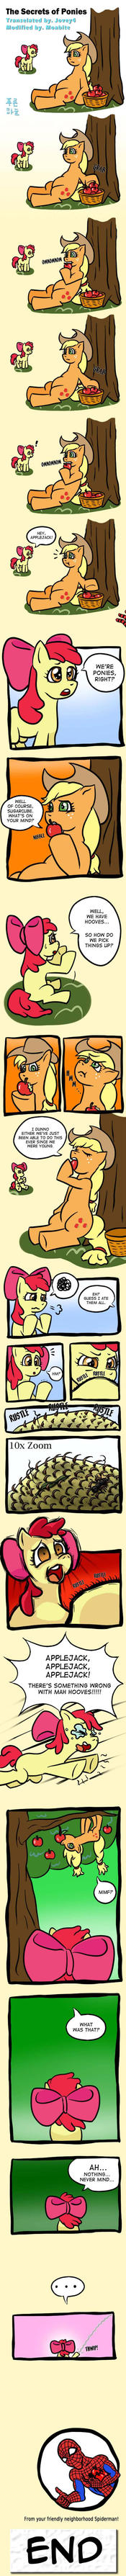 The Secrets of Ponies translated ver. by mrs1989